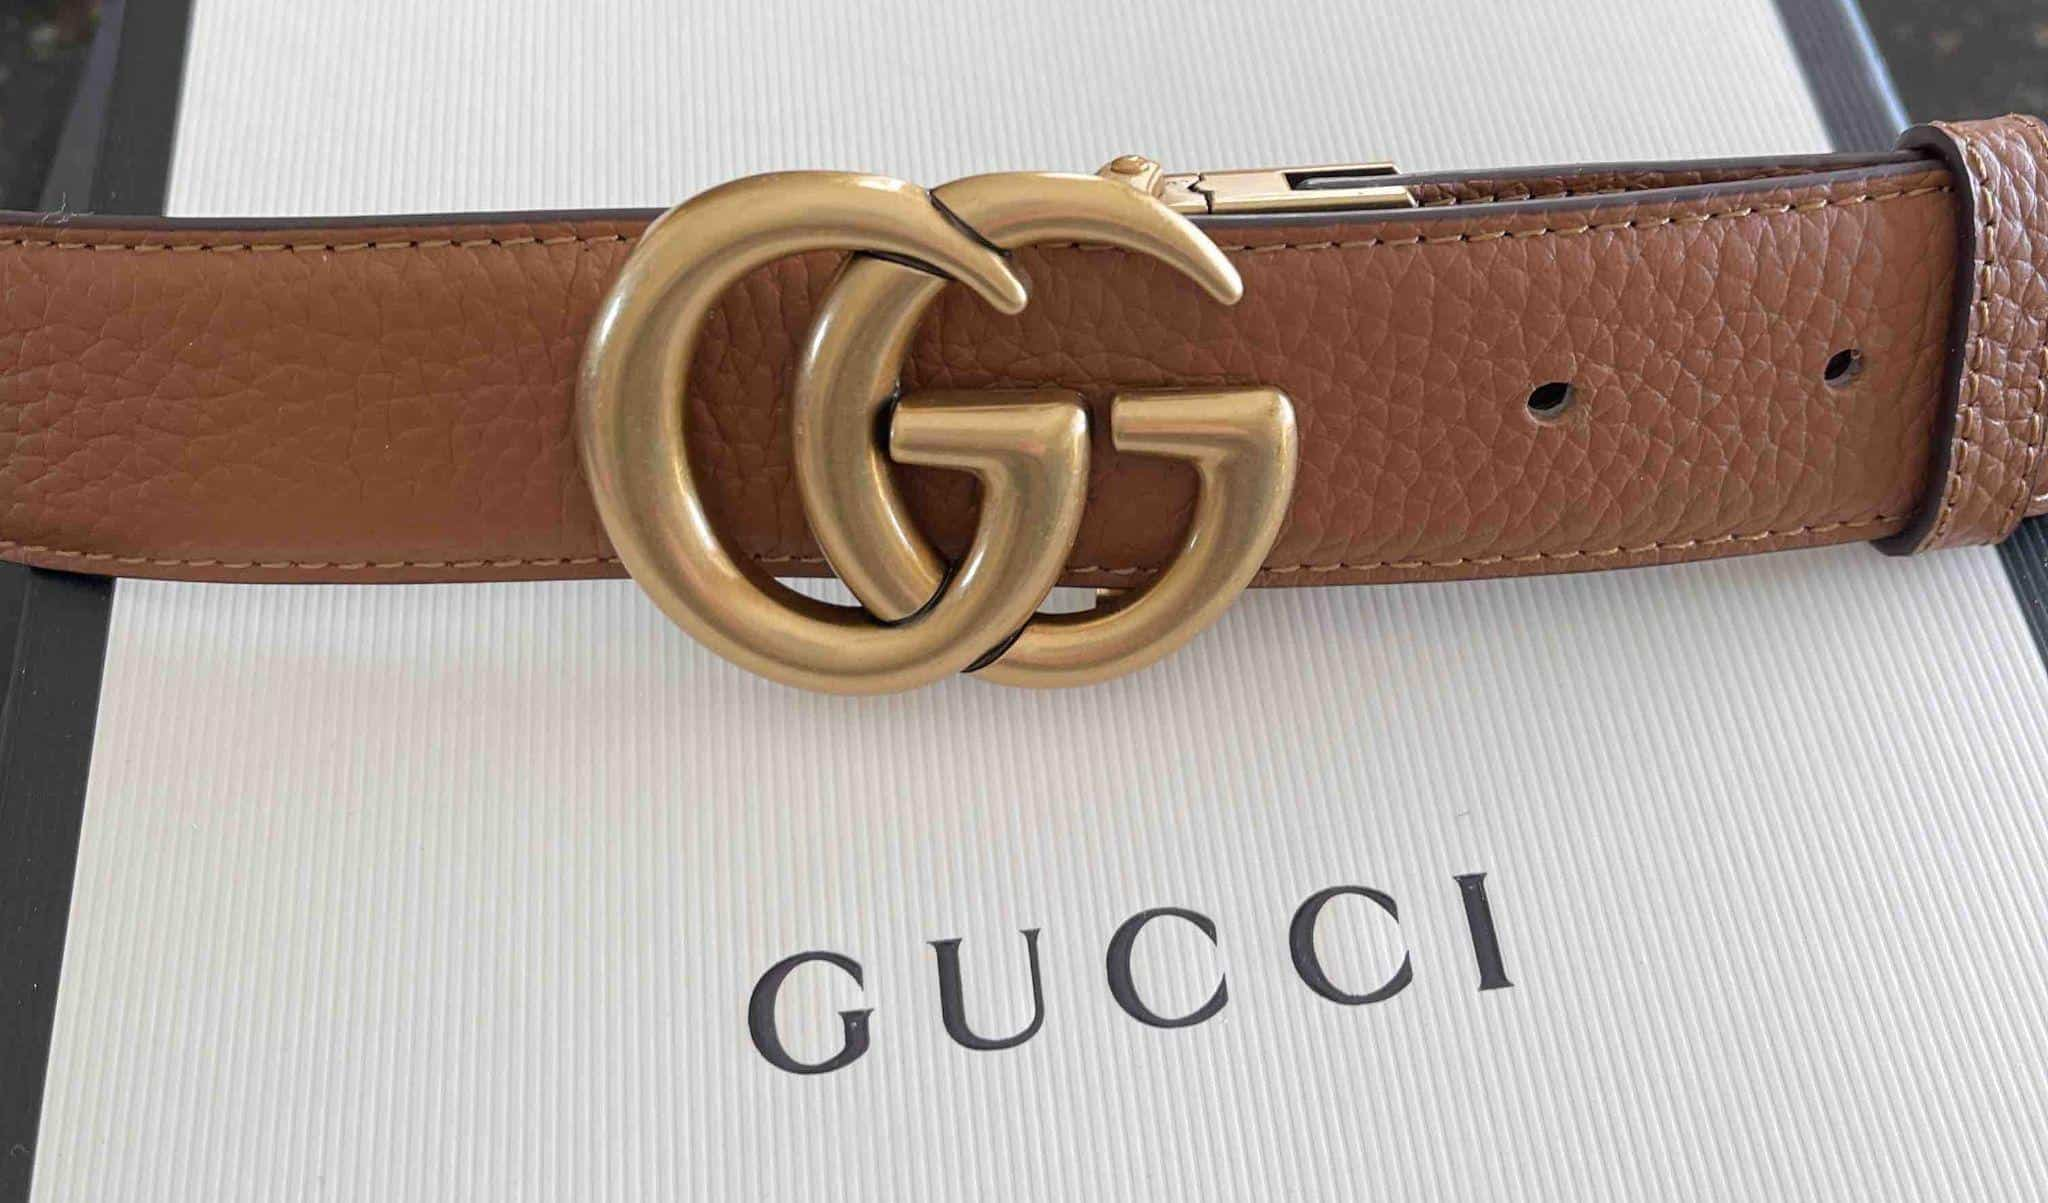 Leather Belt with Bold Double G Buckle is 10 Best Gucci Belt Dupes, 10 Gucci Belt Dupes that seriously look Real, The best Gucci Inspired Belts, Fake Gucci Belts (GG Belts) and Gucci Belt Dupes, 10 Cheap Gucci belts, 10,  Affordable Alternatives To The Popular Gucci Marmont Belt, Best Gucci belt dupe 2021 2022 2023, How to get a Gucci belt for cheap,